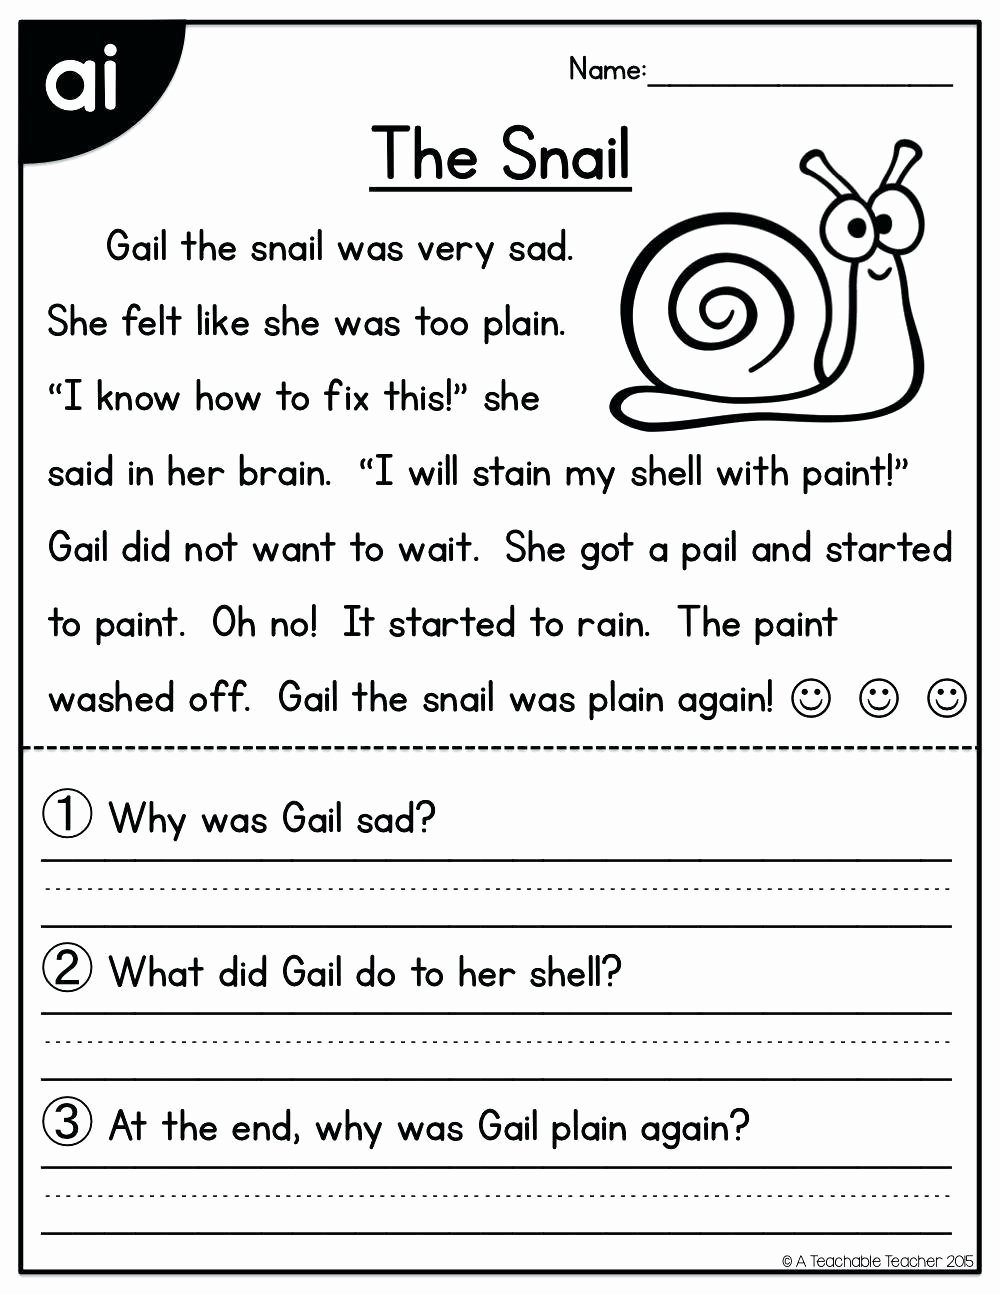 Gifted and Talented Math Worksheets Printable Worksheet Flash Kids Cards Gifted and Talented Practice